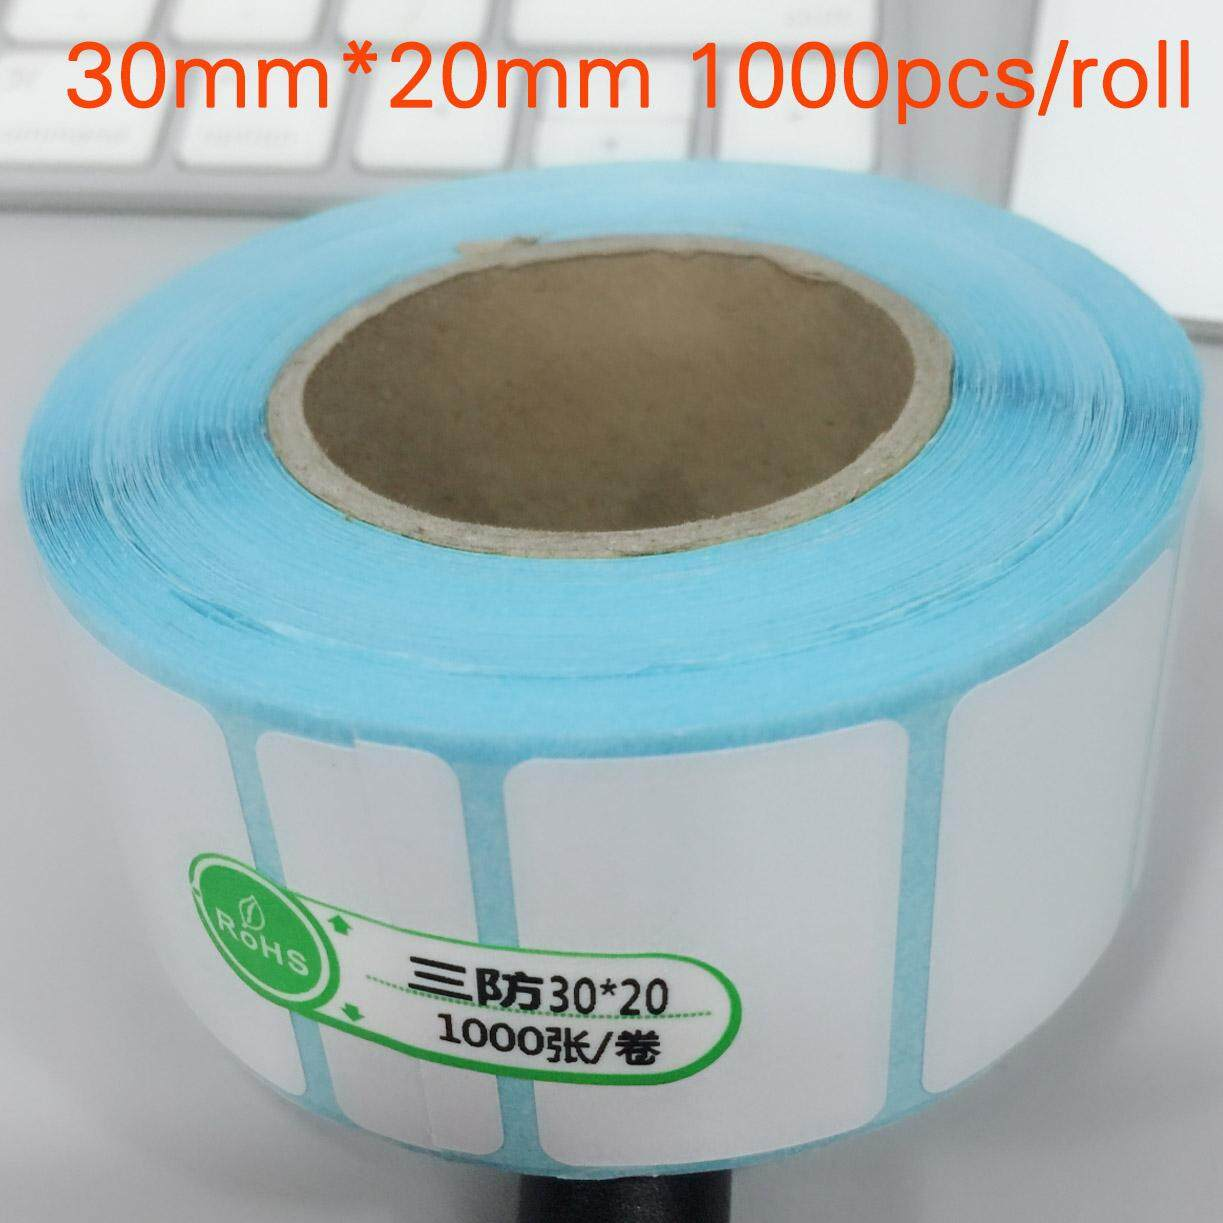 30x20mm 1000pcs Thermal Adhesive Paper Stickers + Quality Label Bar Code Printing Paper By Antshop.